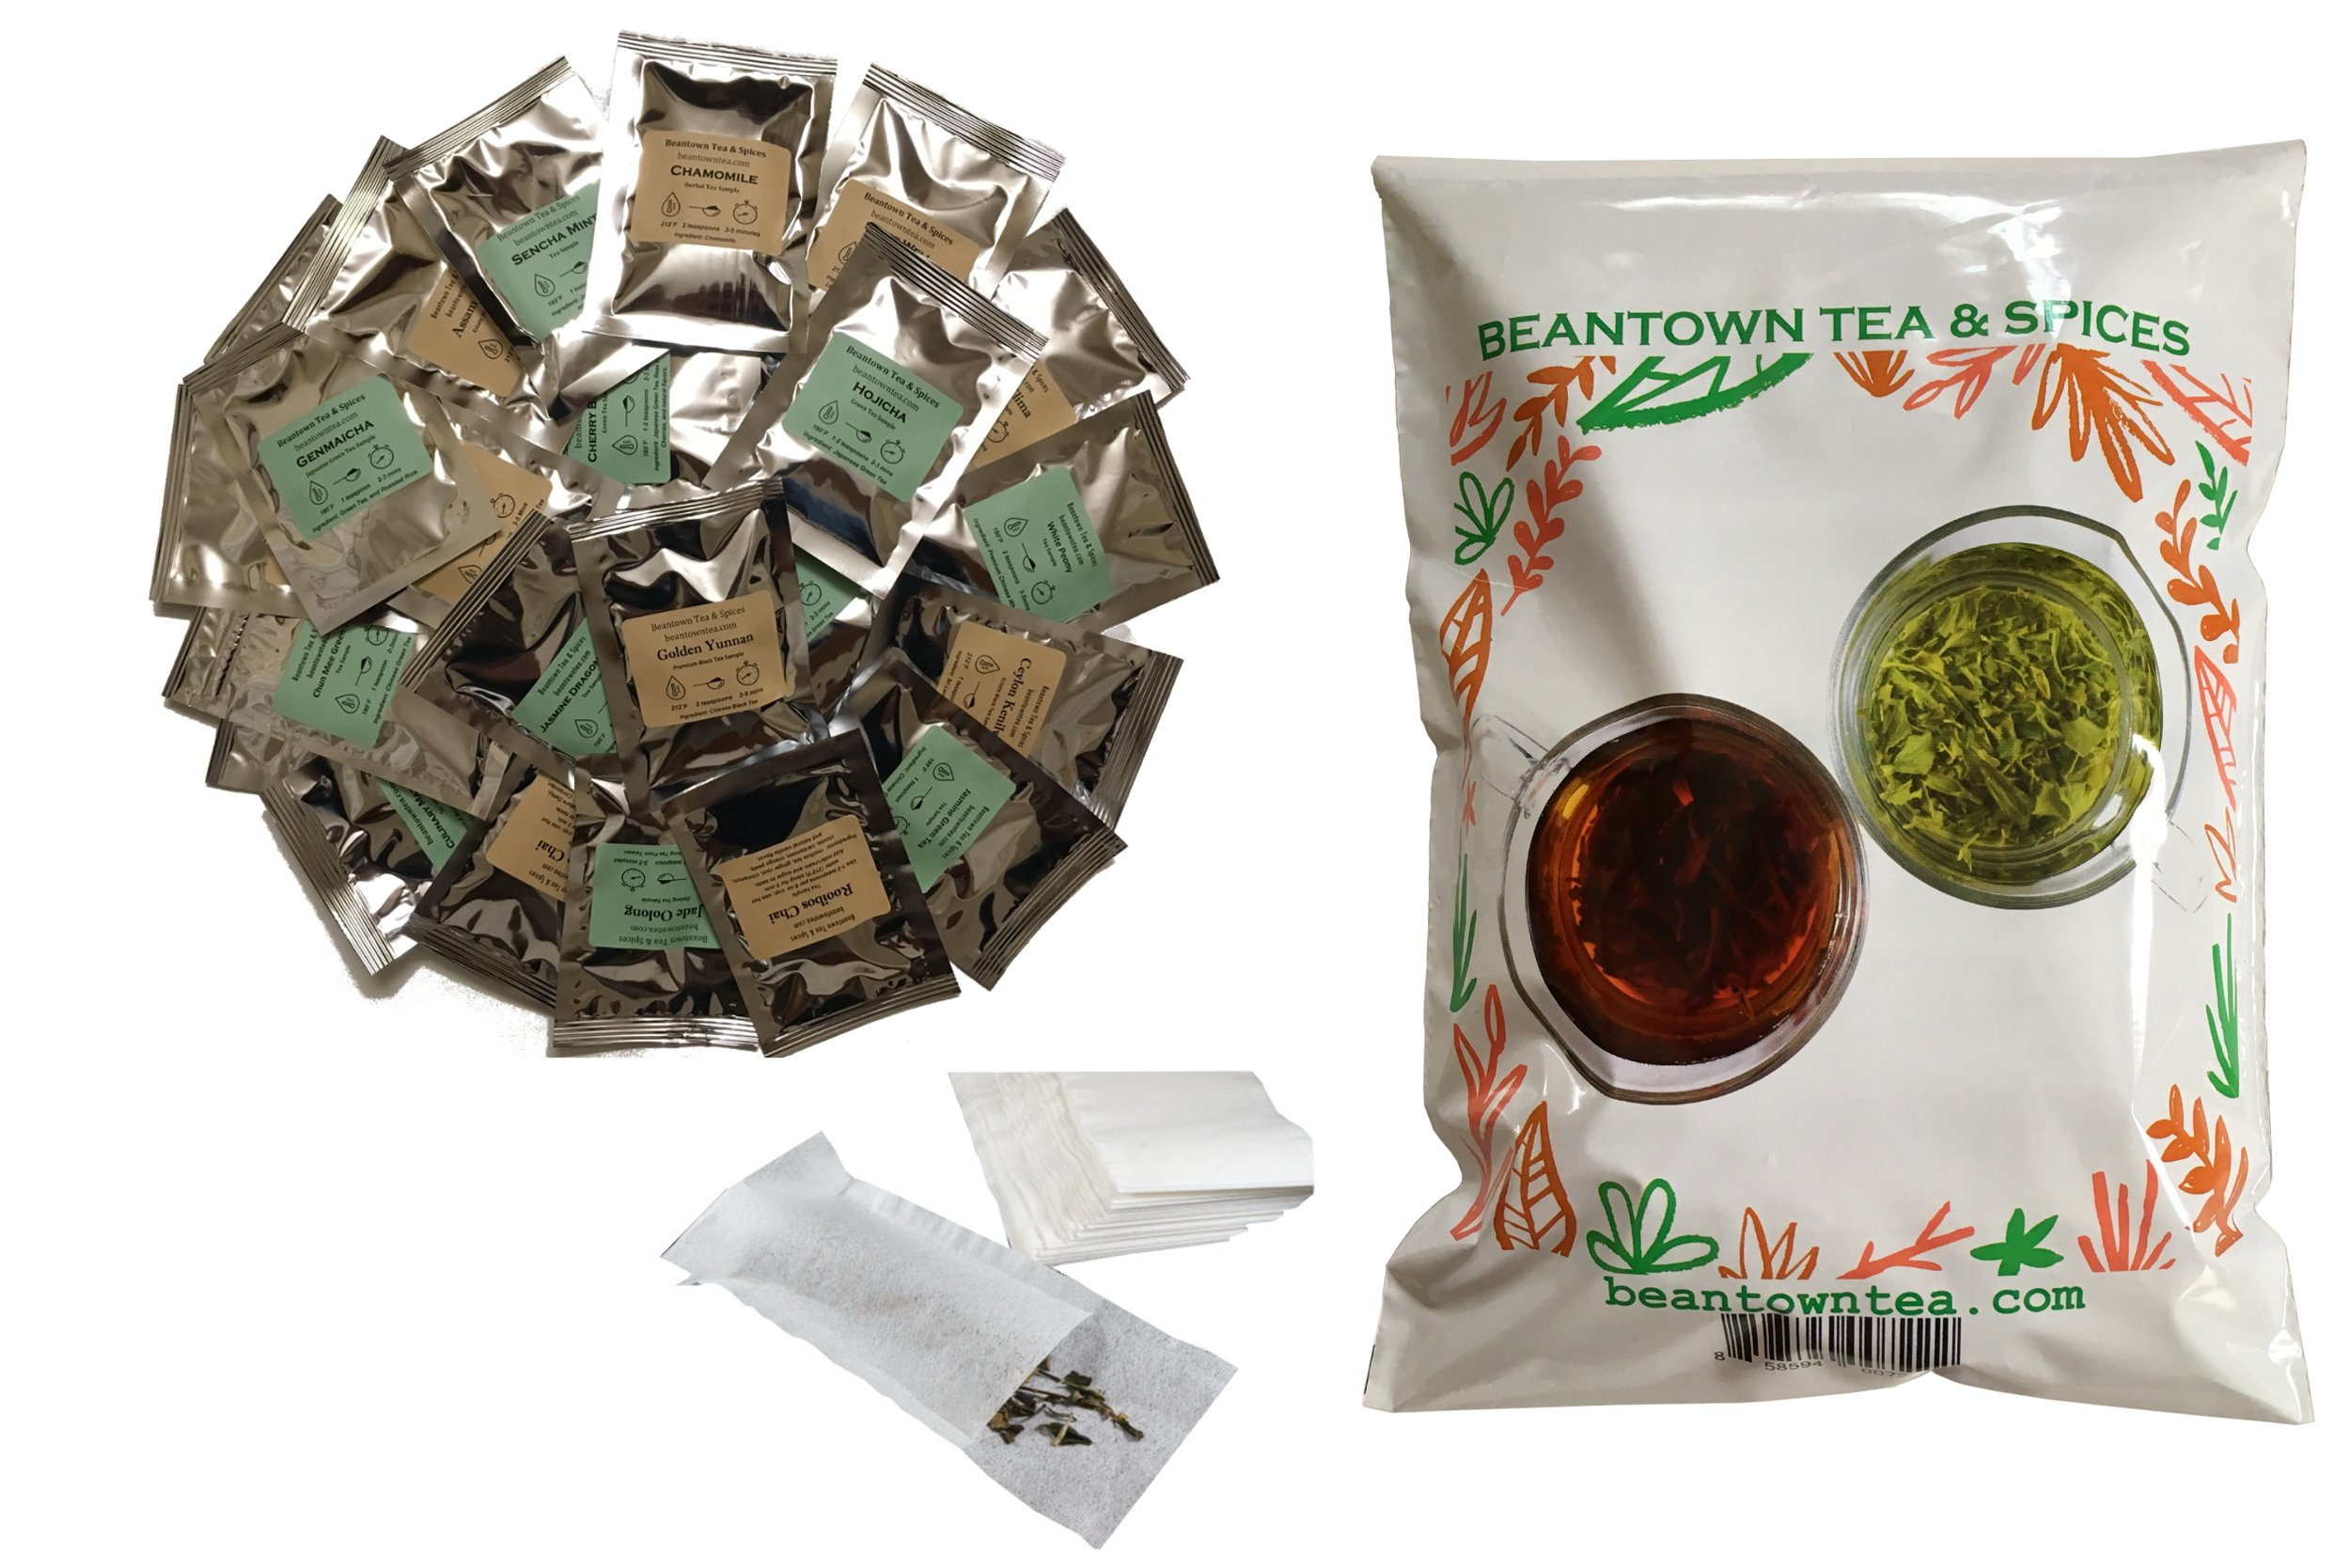 Beantown Tea & Spices - Tea Sampler Value Pack. 30 Gourmet Loose Leaf Tea Samplers & 100 Filters. Variety Pack. Great Gift Idea and Stocking Stuffers. Green, White, Black and Herbal Teas by Beantown Tea & Spices